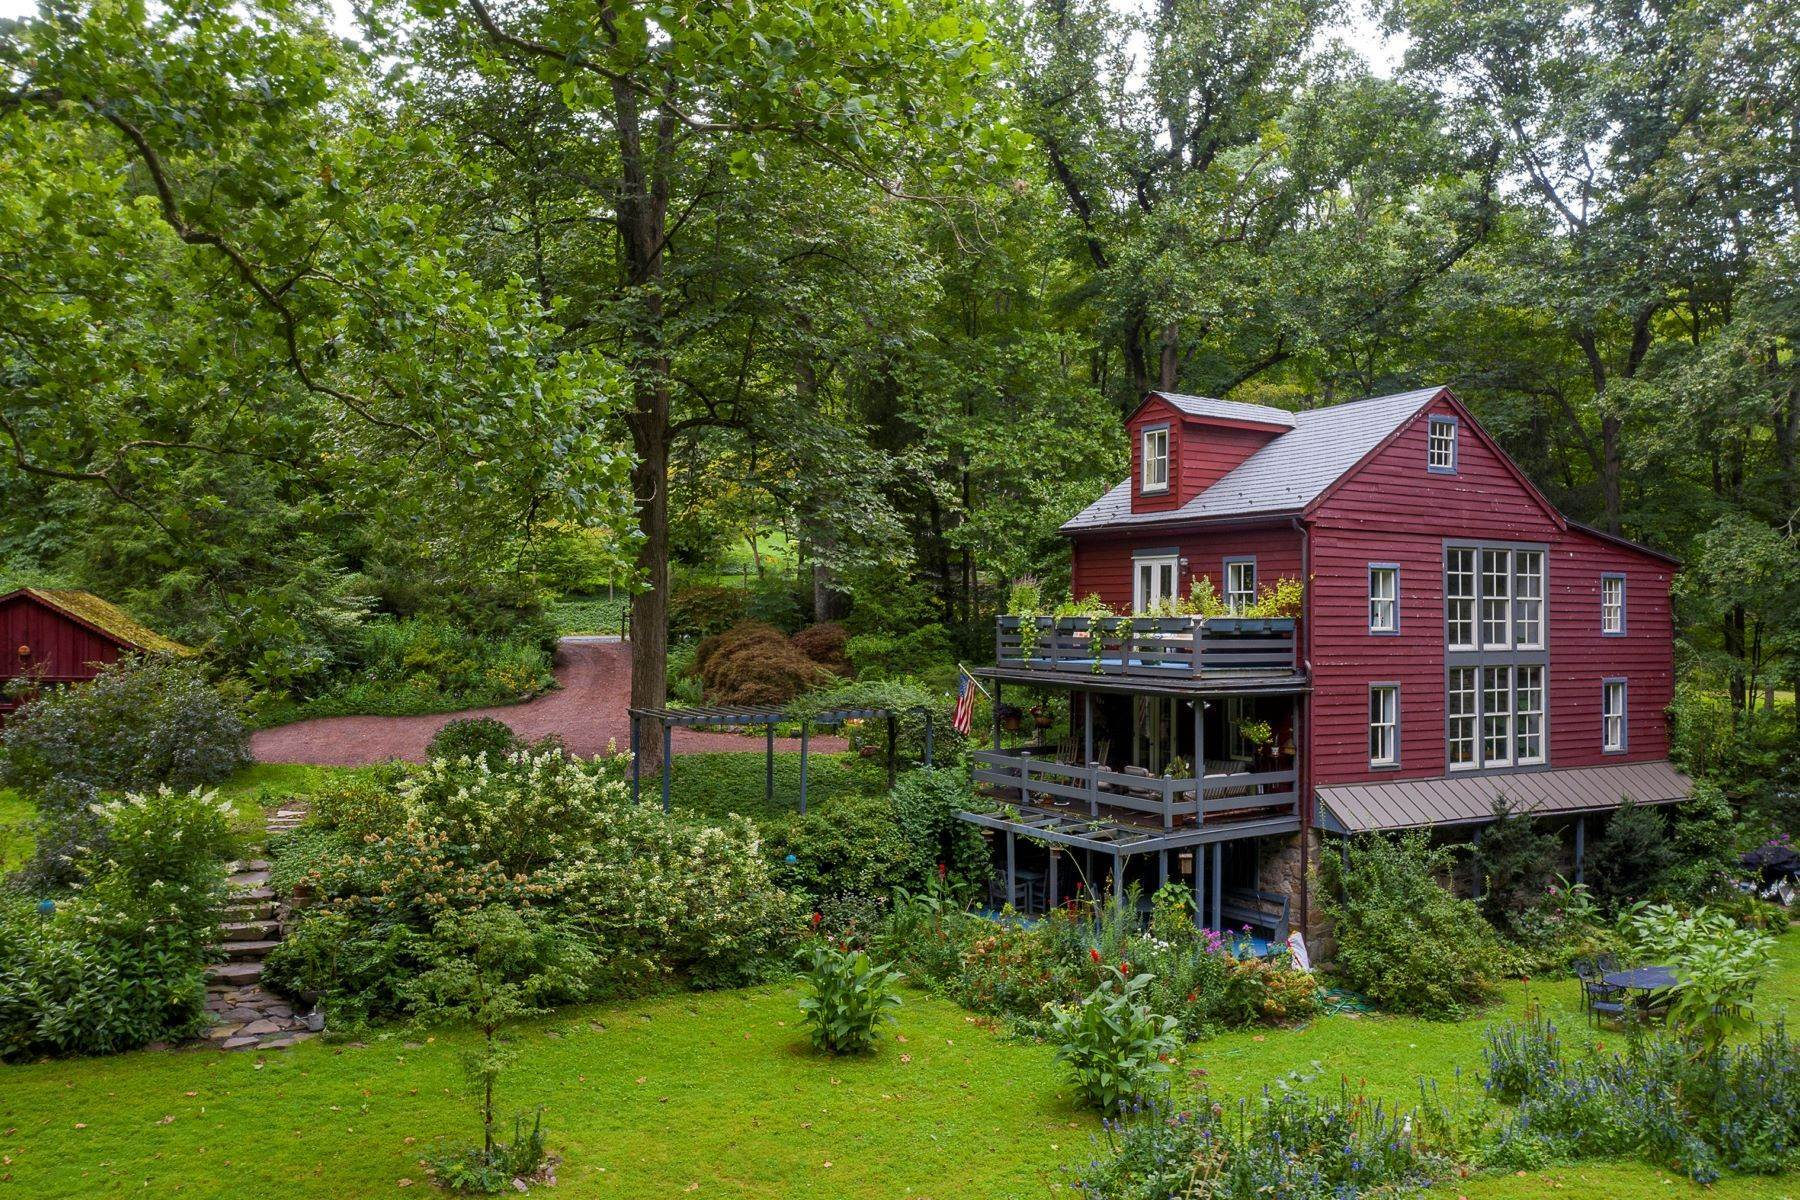 Single Family Homes for Sale at The Mill House 6444 FLEECYDALE RD New Hope, Pennsylvania 18938 United States